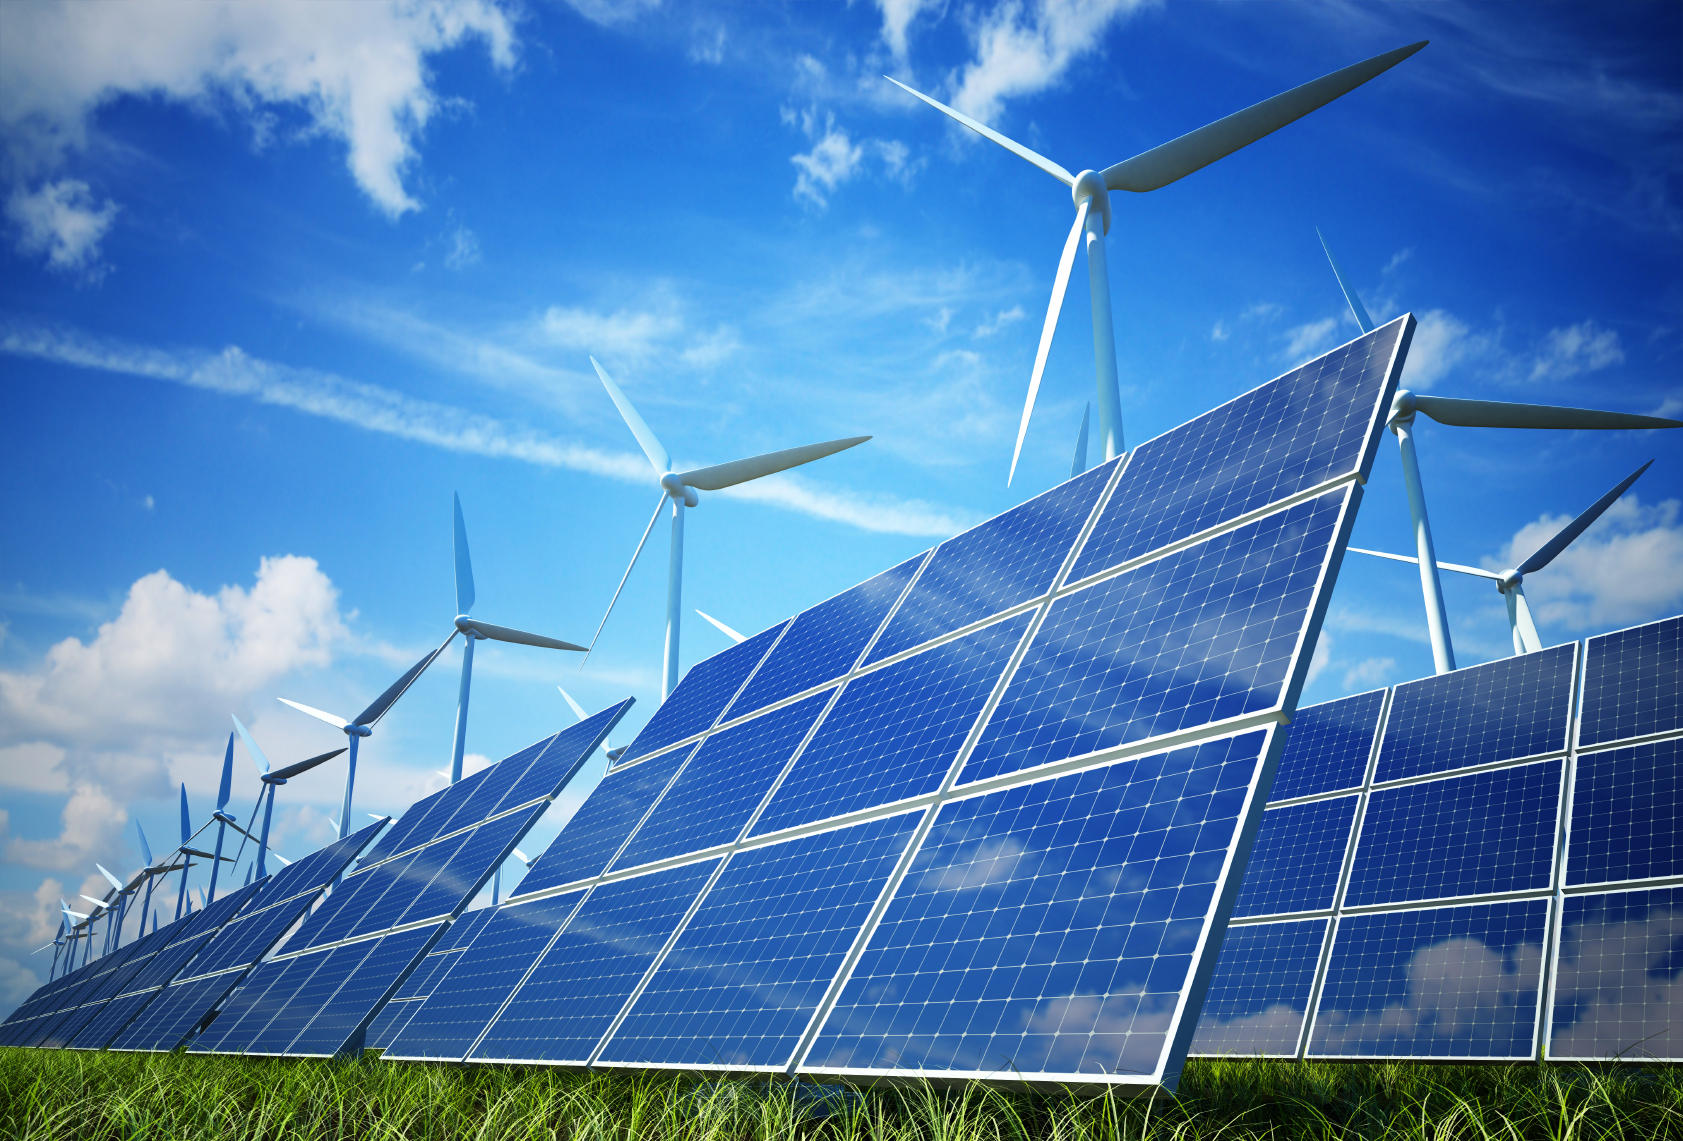 Azerbaijani Energy Ministry to hold auctions for development of renewable energy projects